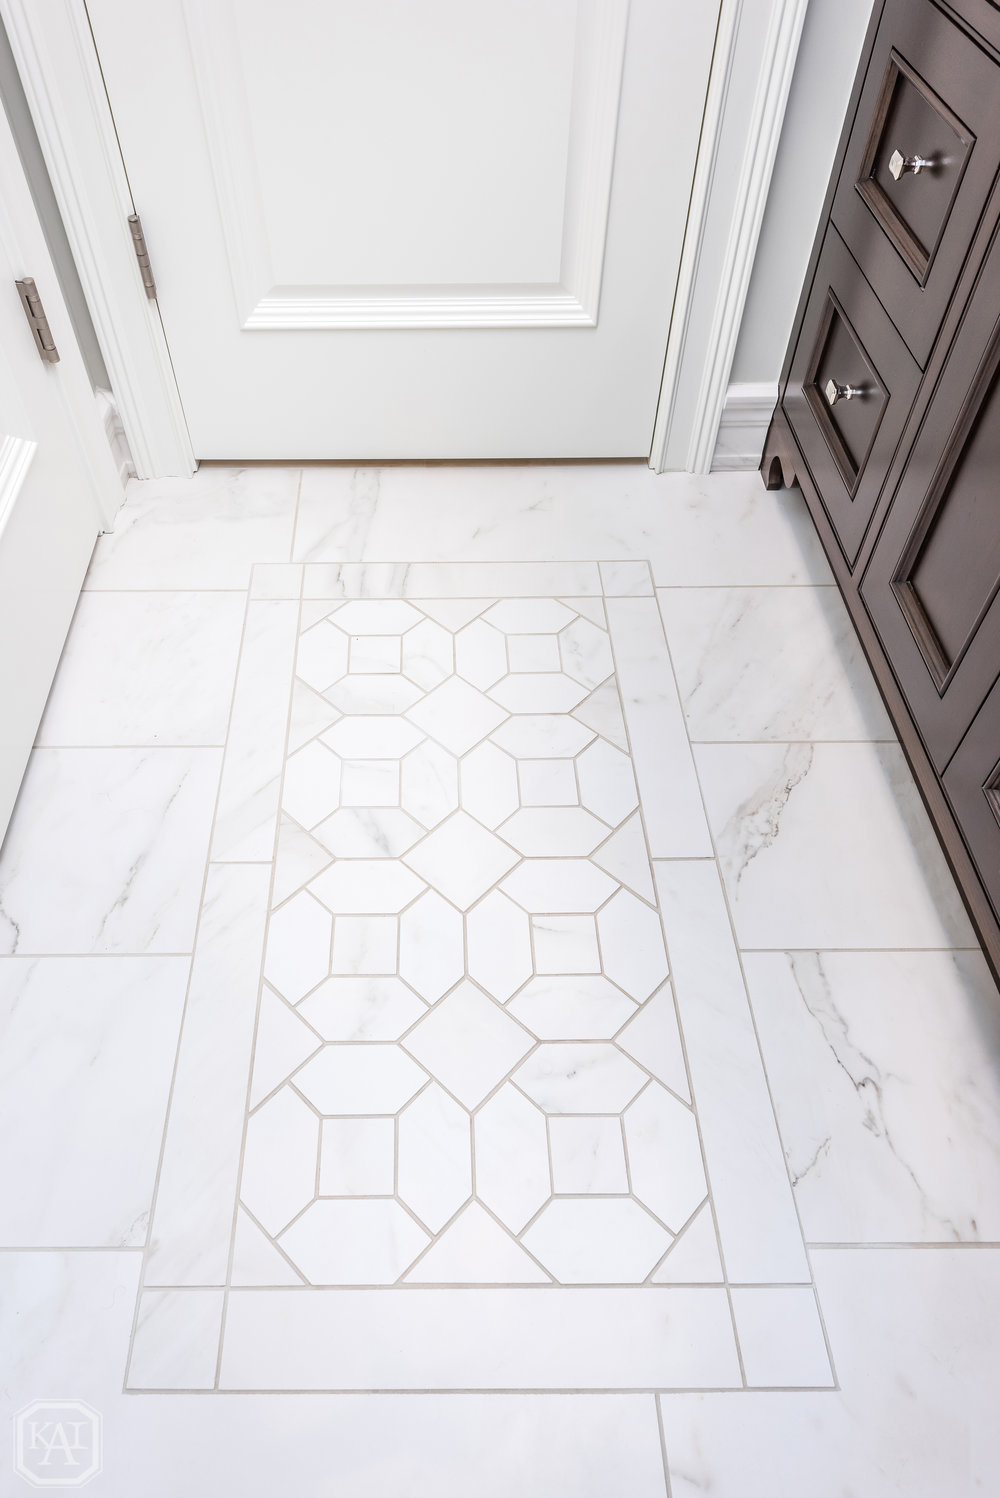 ZITELLA GUEST BATHROOM_TILE FLOOR_FINAL.jpg